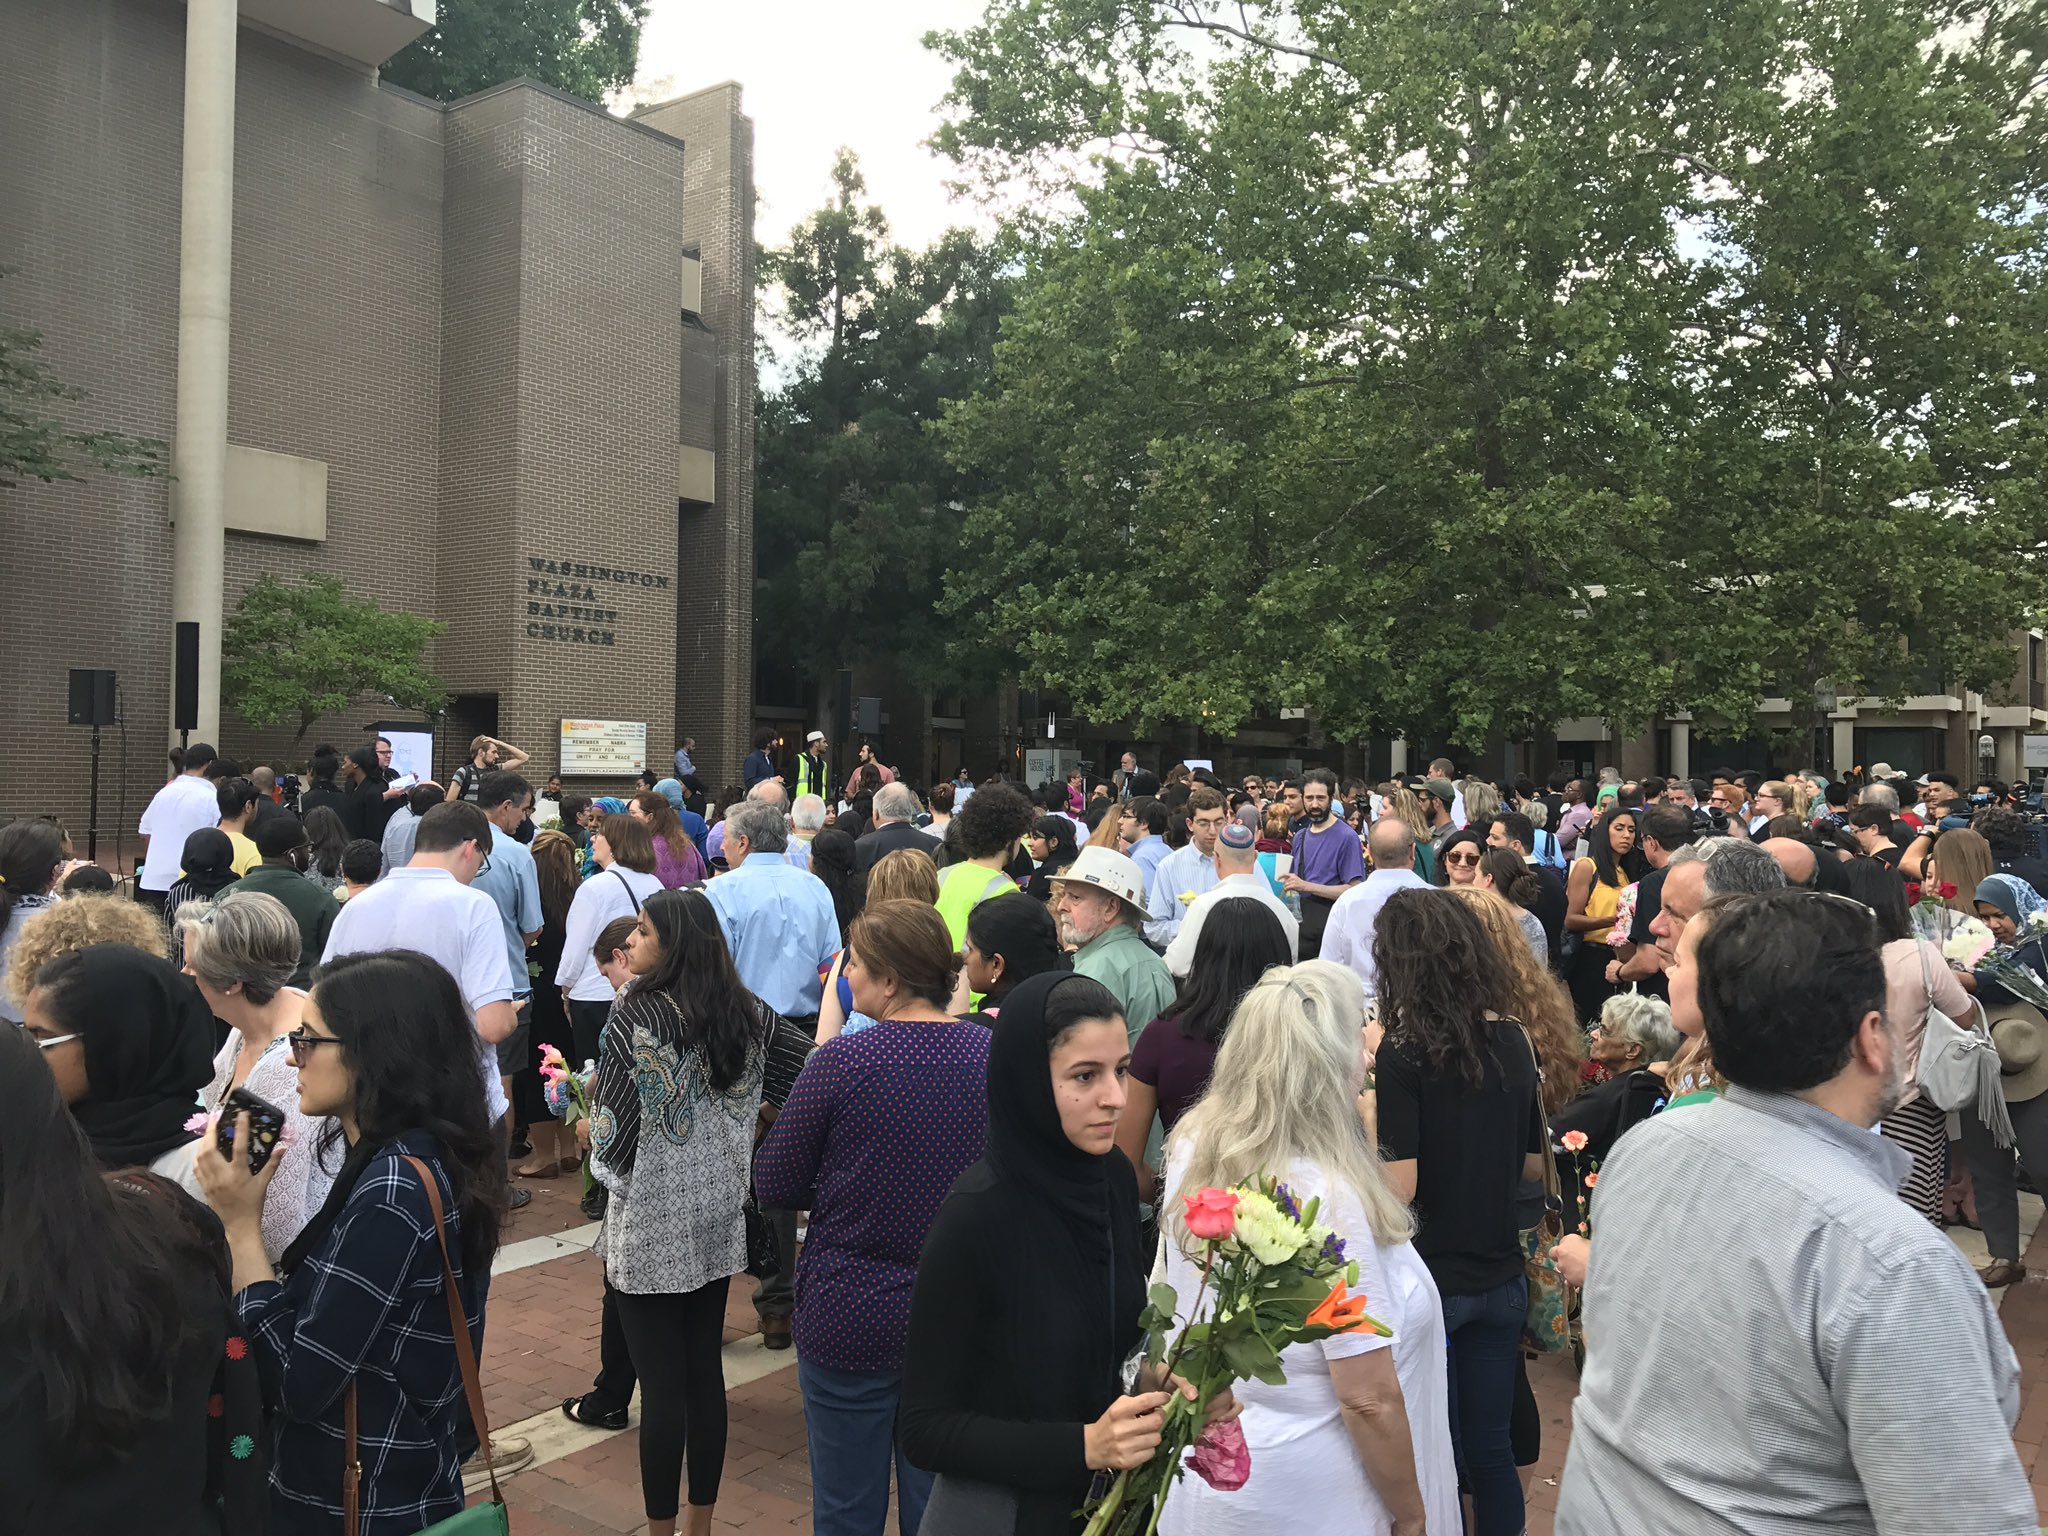 Enormous crowd in Reston for #Habra vigil. Virginians will stand together against violence and for love of neighbor. https://t.co/PBXqkGHM2w